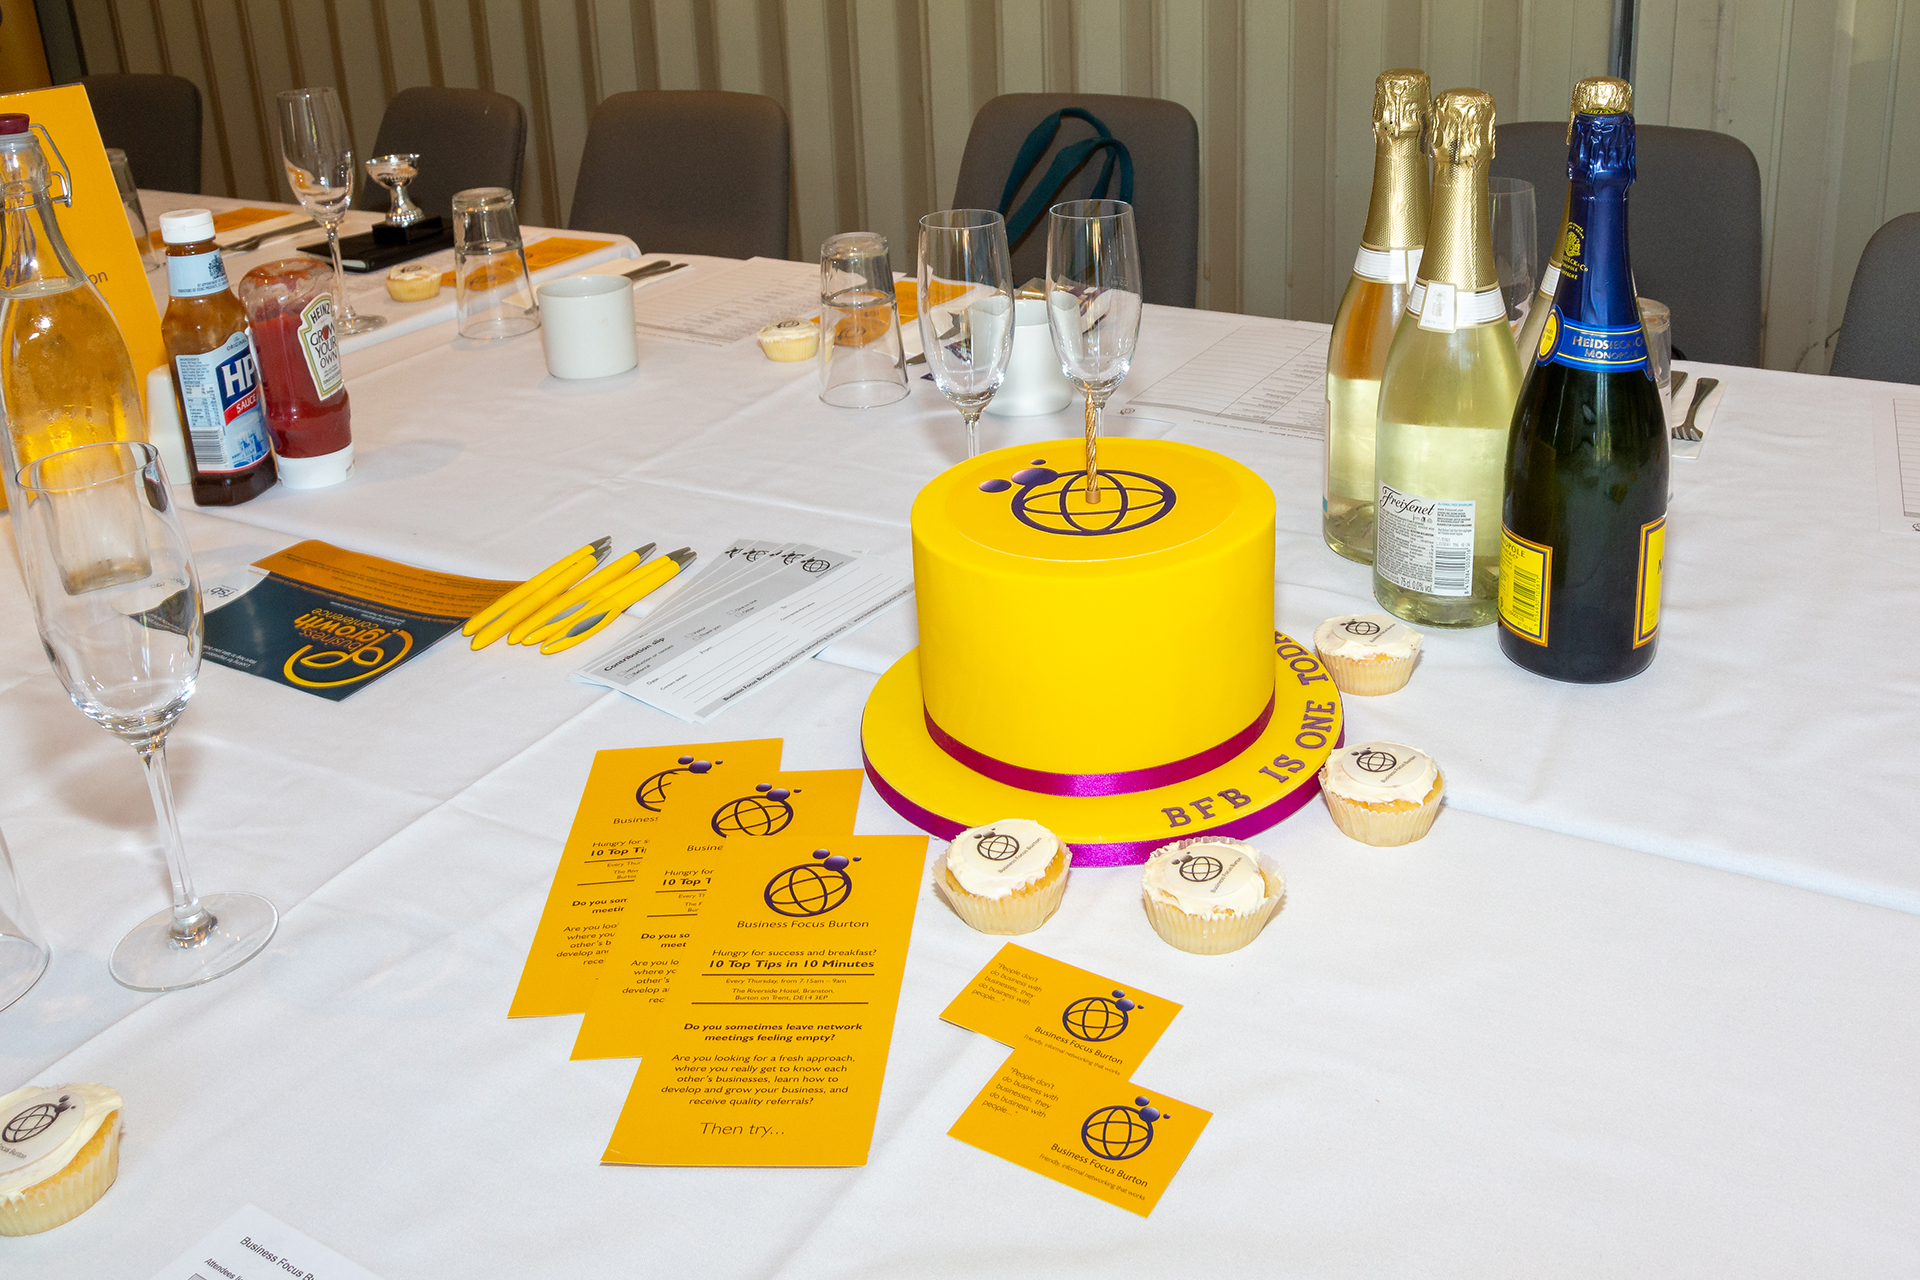 Business Focus Burton One year of Networking